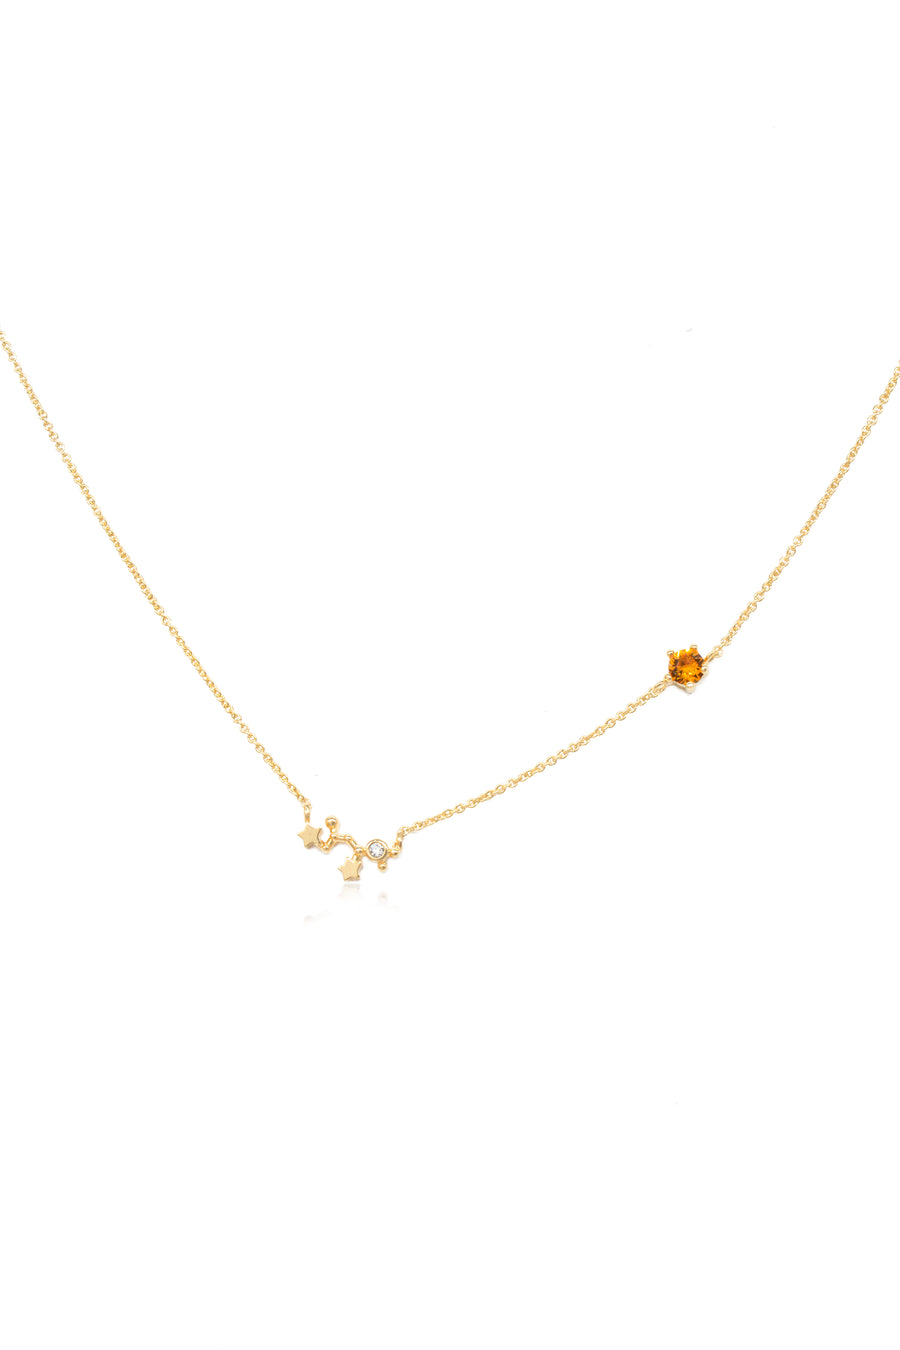 NEW IN! ZODIAC Necklace - All Star Signs